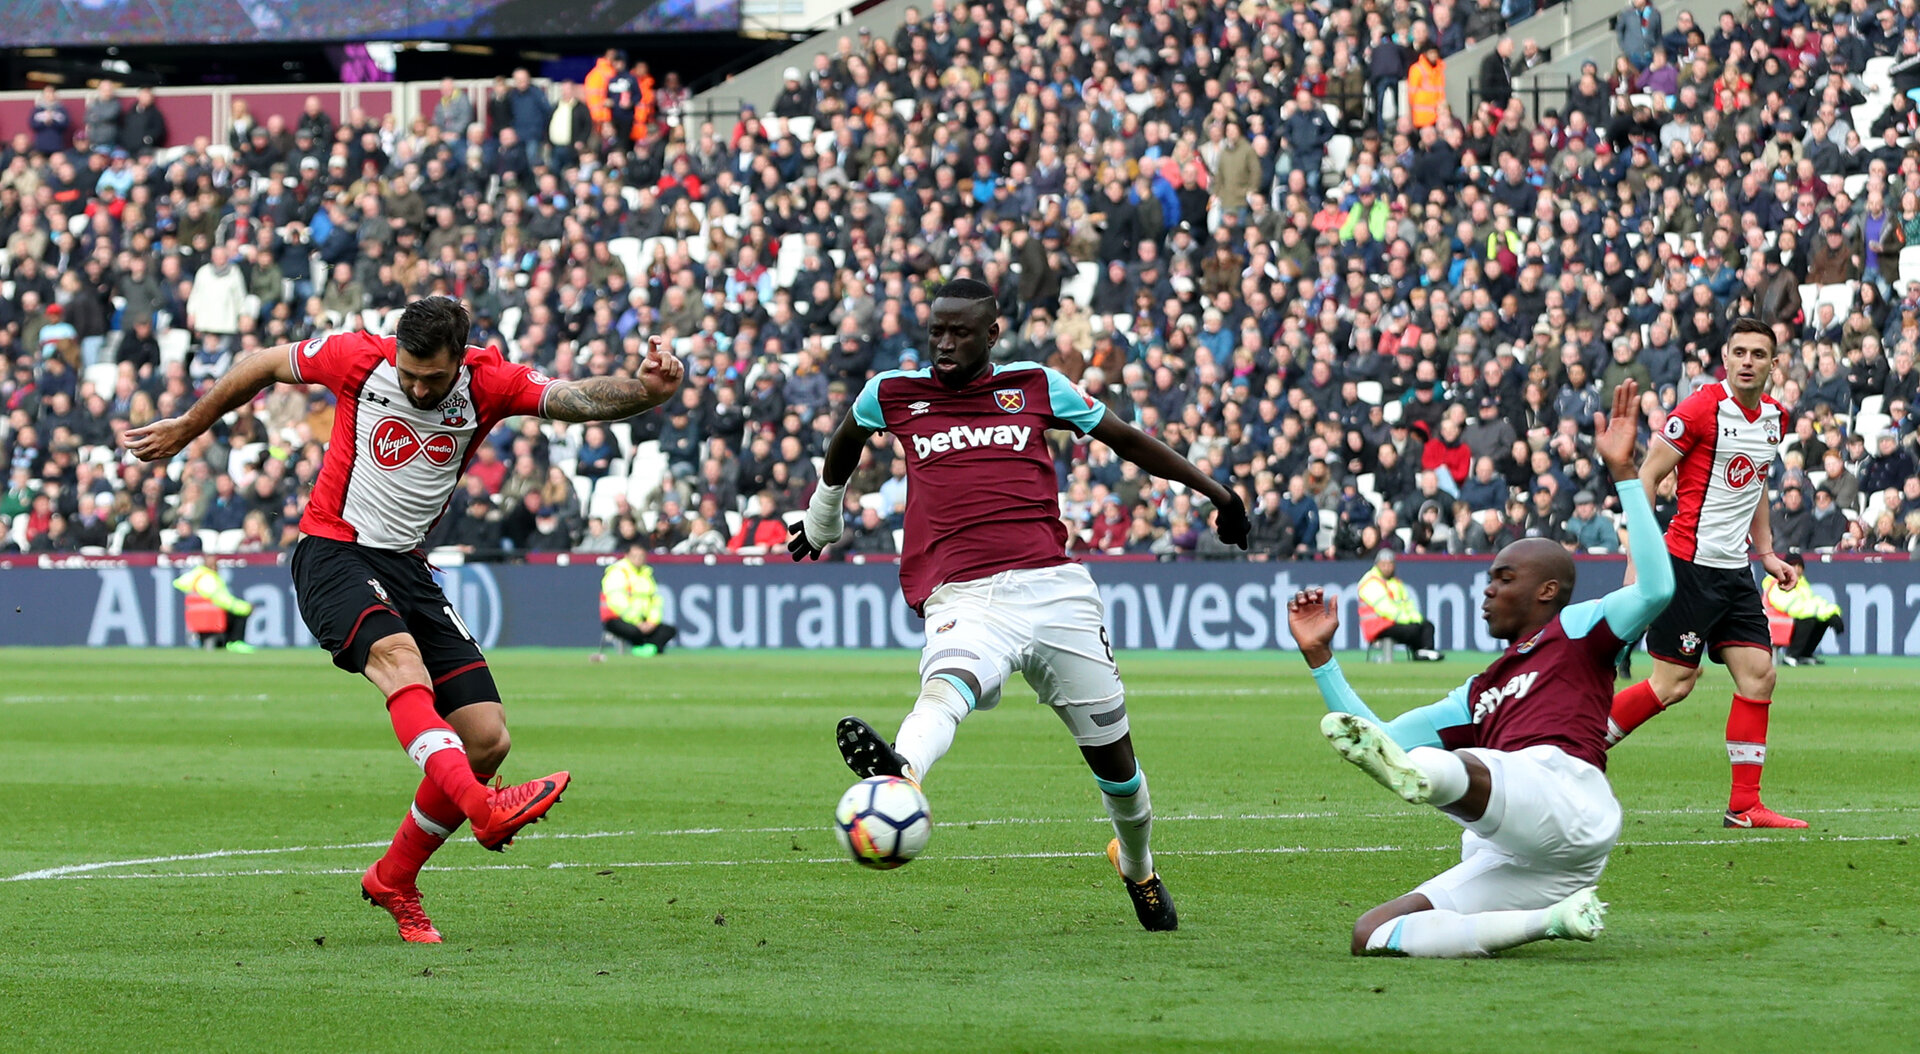 LONDON, ENGLAND - MARCH 31: Charlie Austin of Southampton shoots at goal during the Premier League match between West Ham United and Southampton at the London Stadium on March 31, 2018 in London, England. (Photo by Matt Watson/Southampton FC via Getty Images)